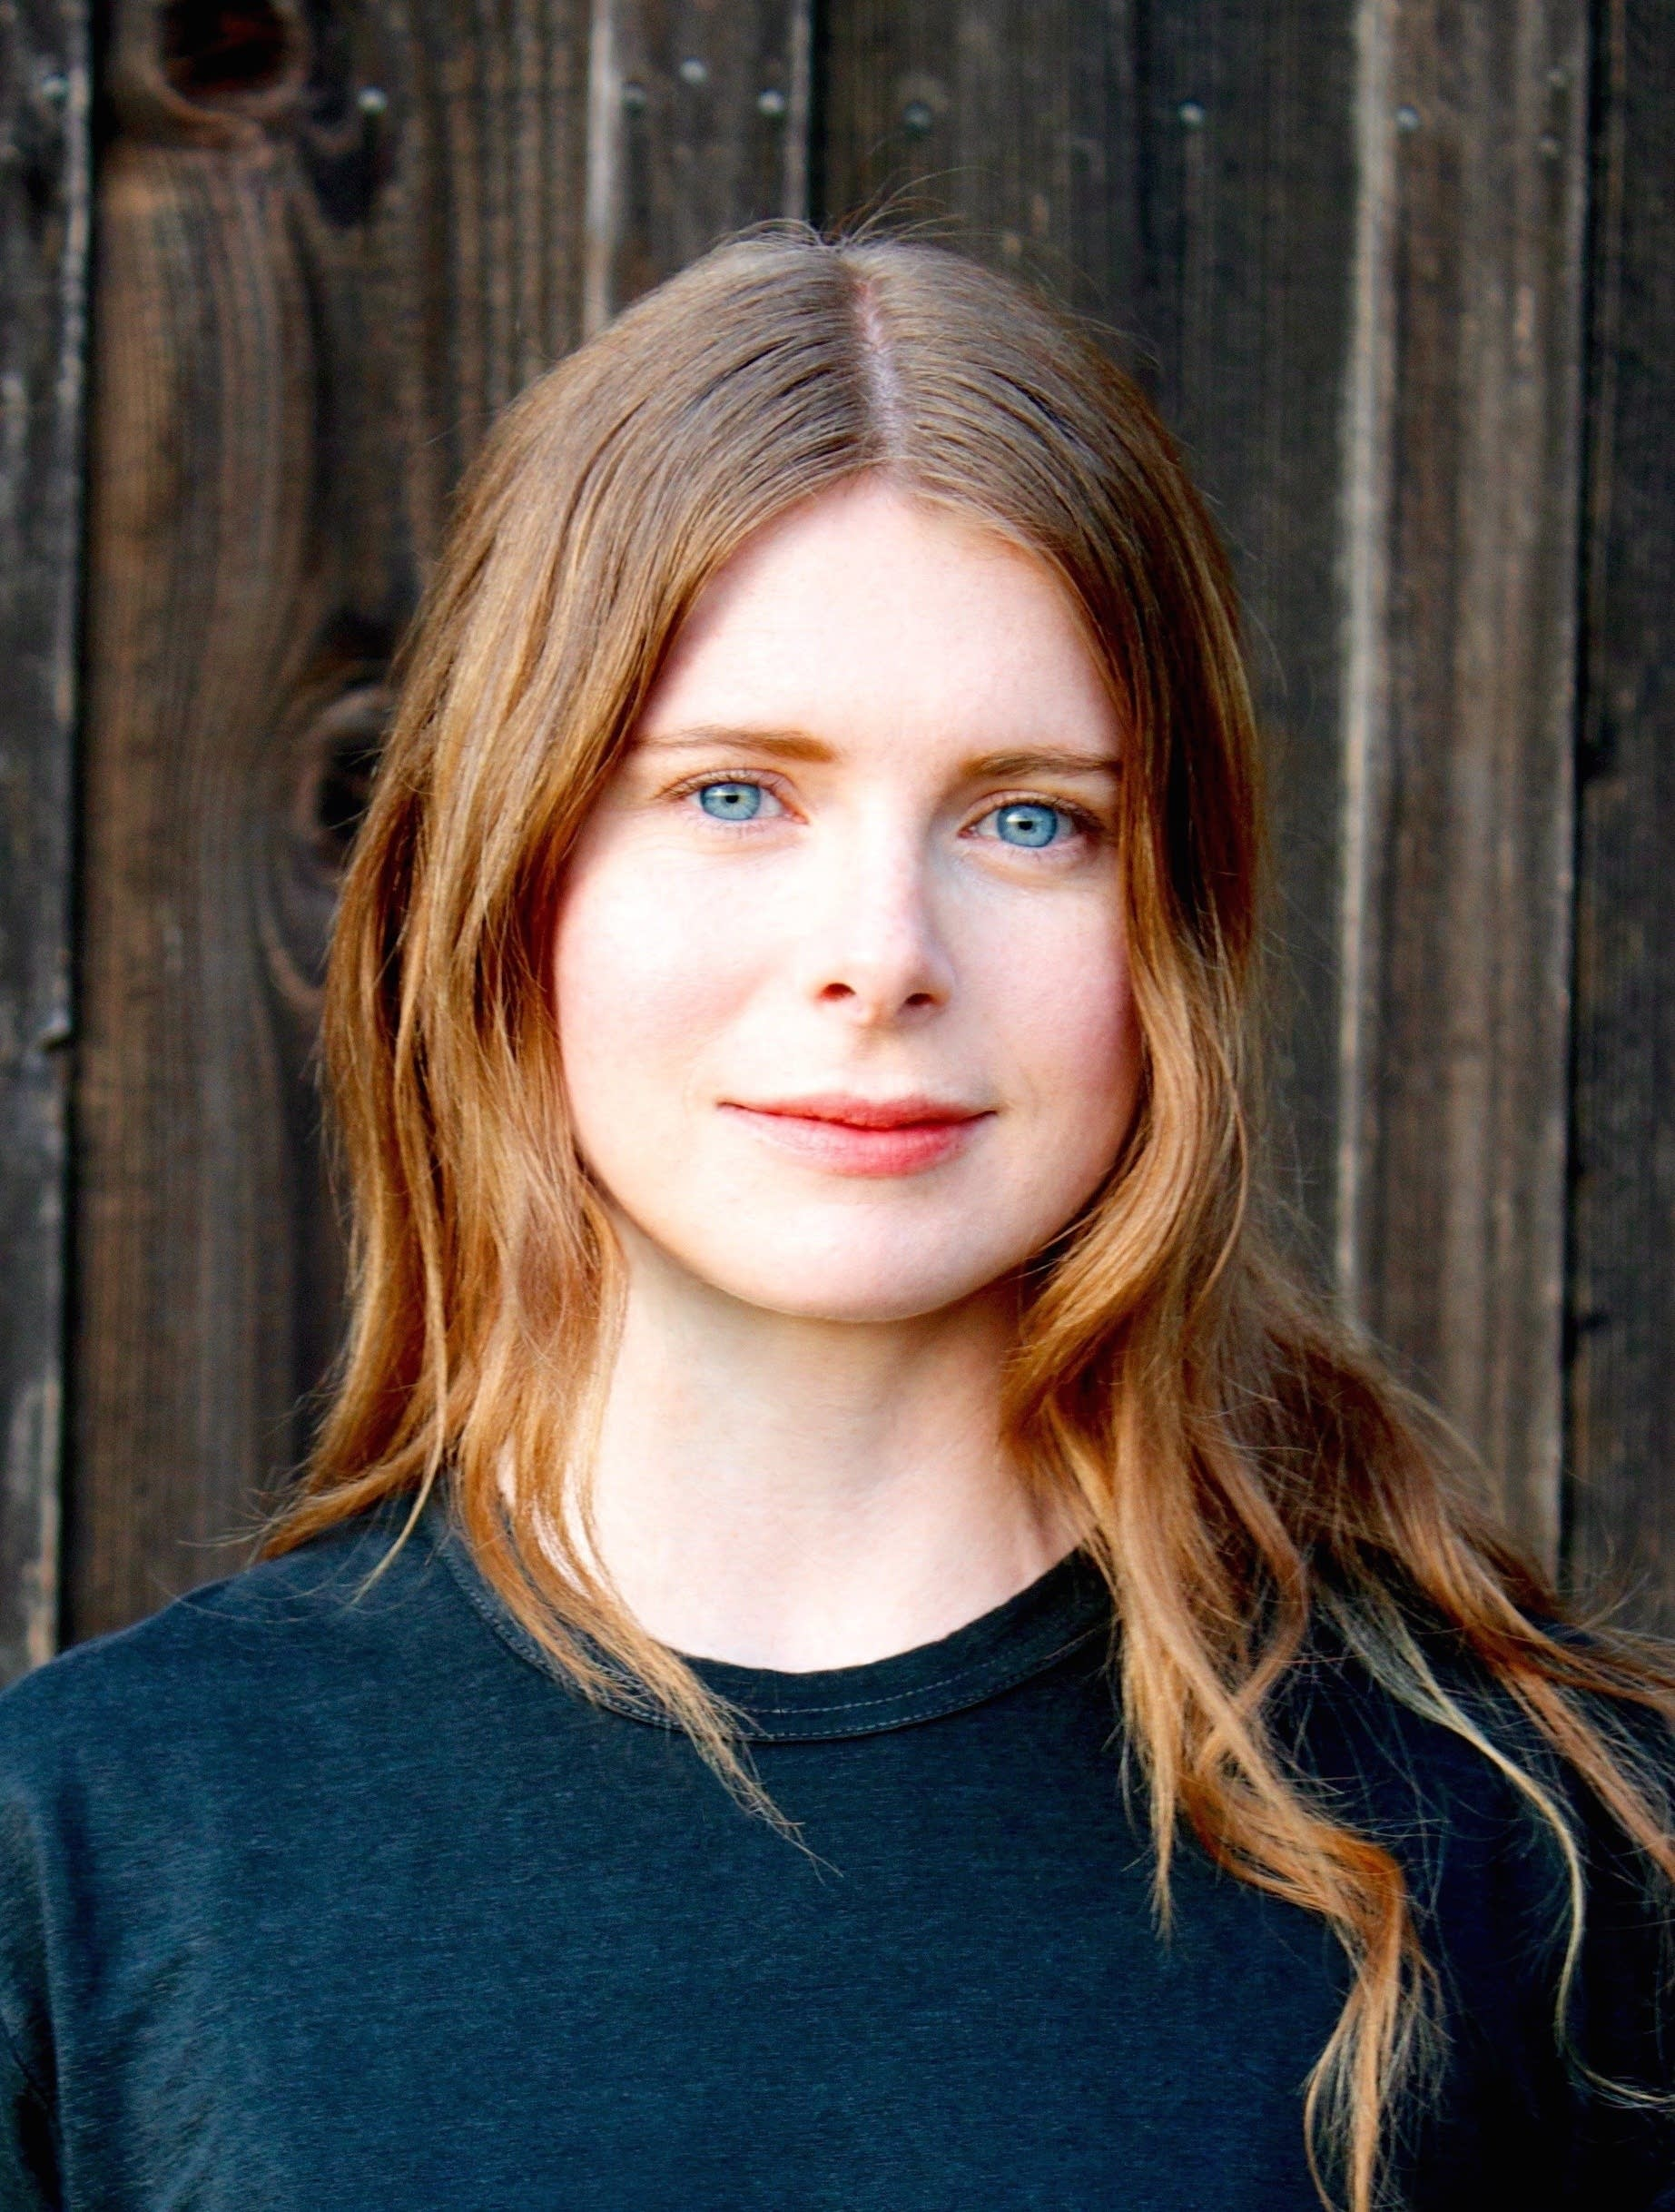 Emma Cline's debut novel set off a bidding war.